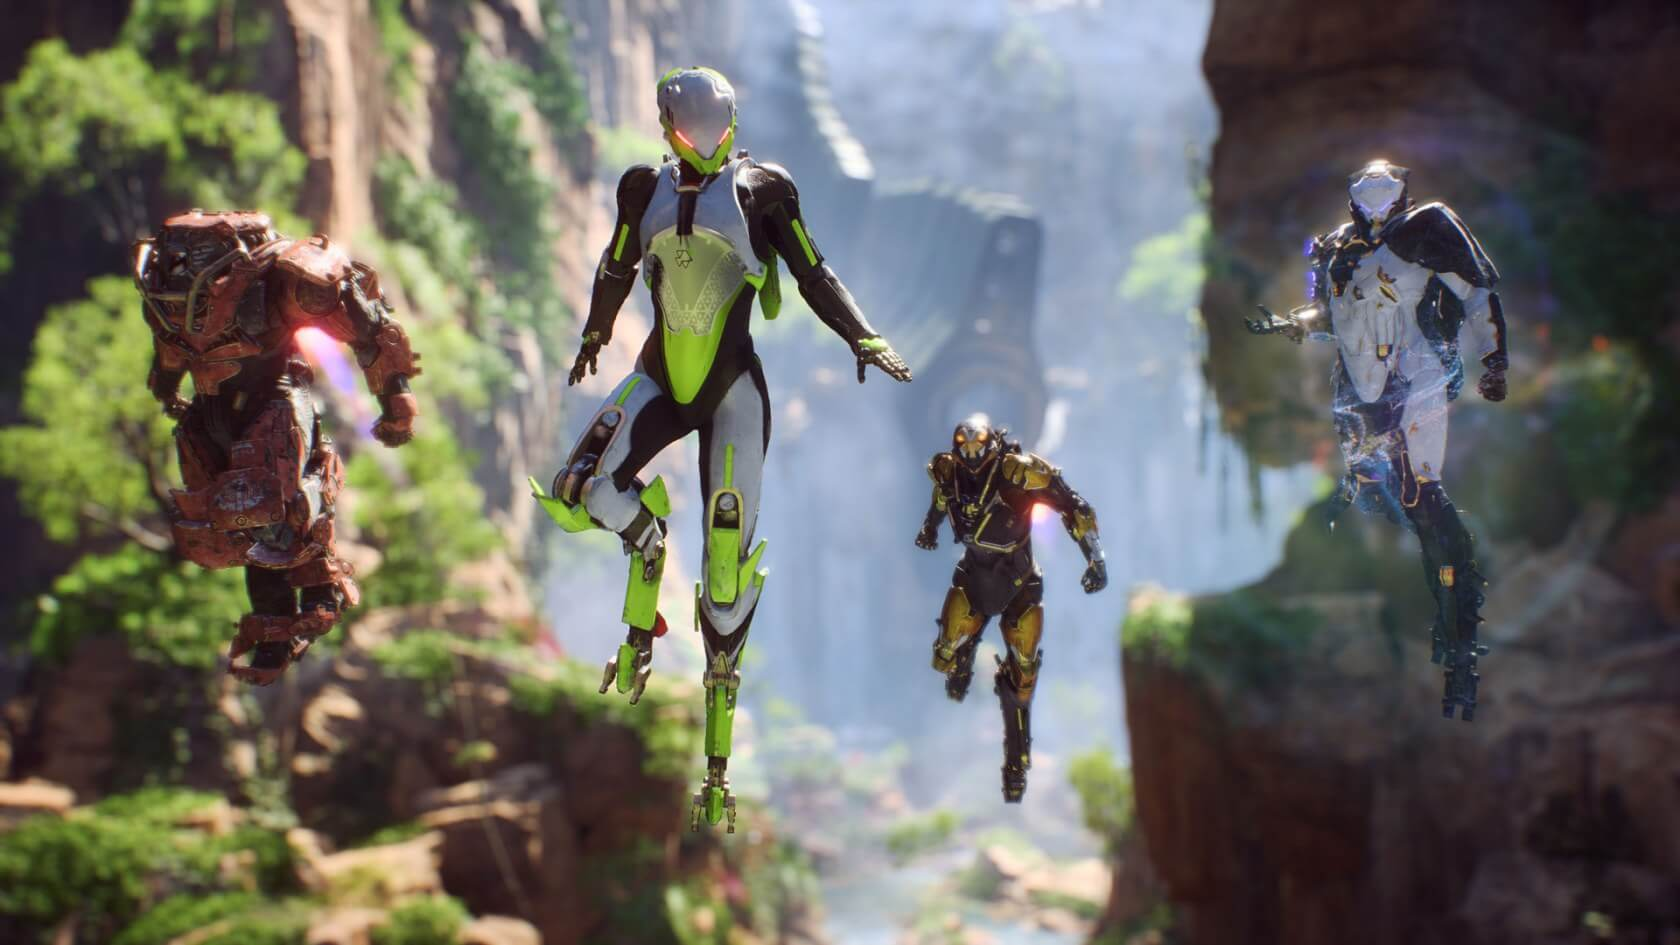 E3 2018: Electronic Arts Gave More Details On Anthem And Battlefield V